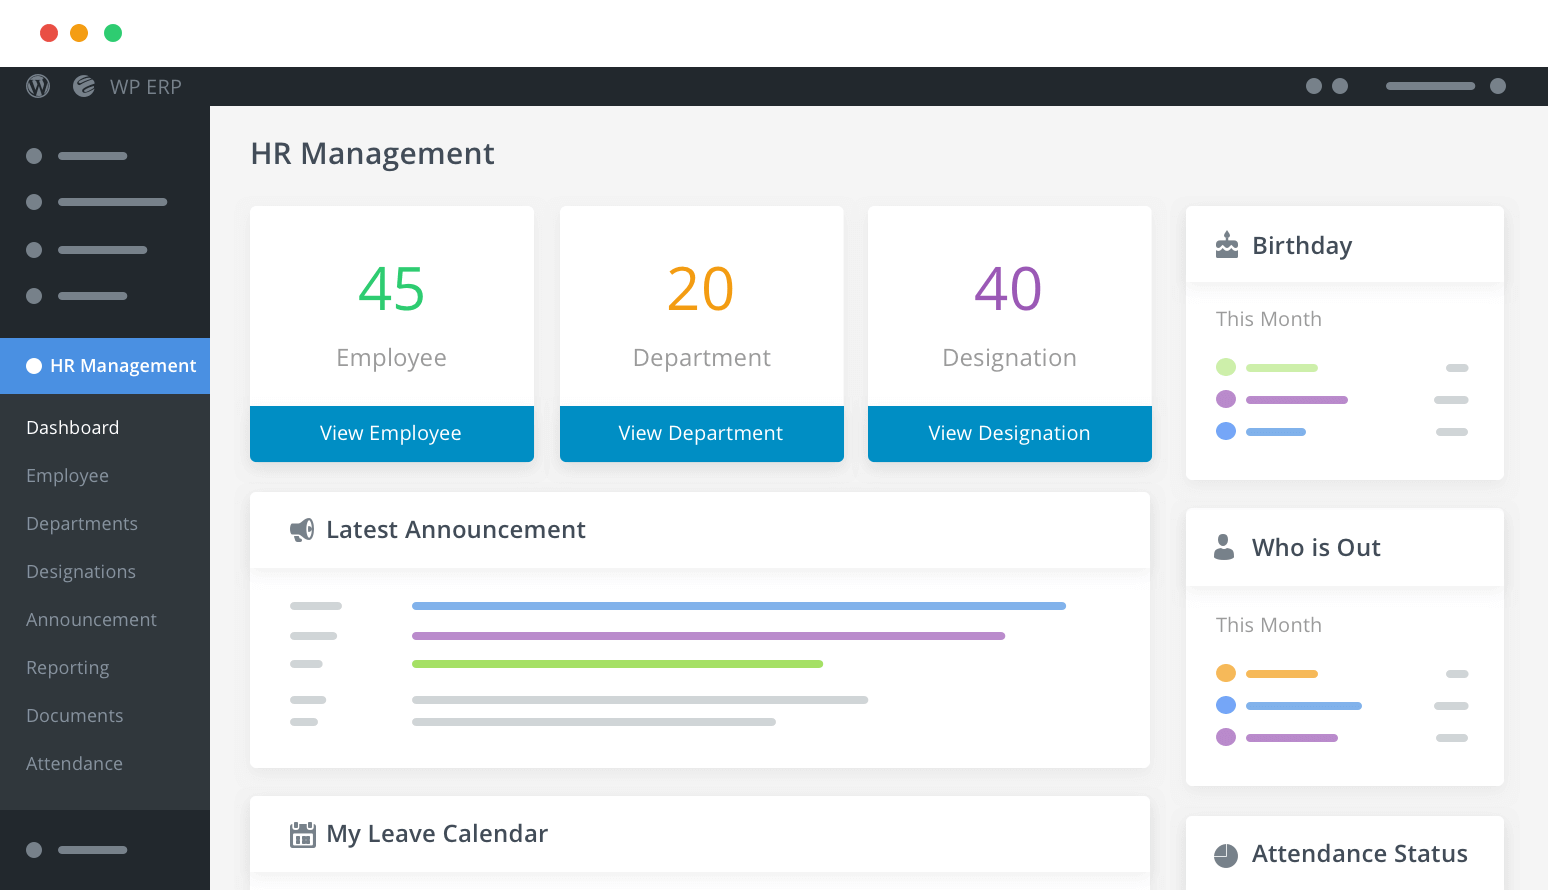 Best WordPress HRM Plugin for Employee Management - WP ERP